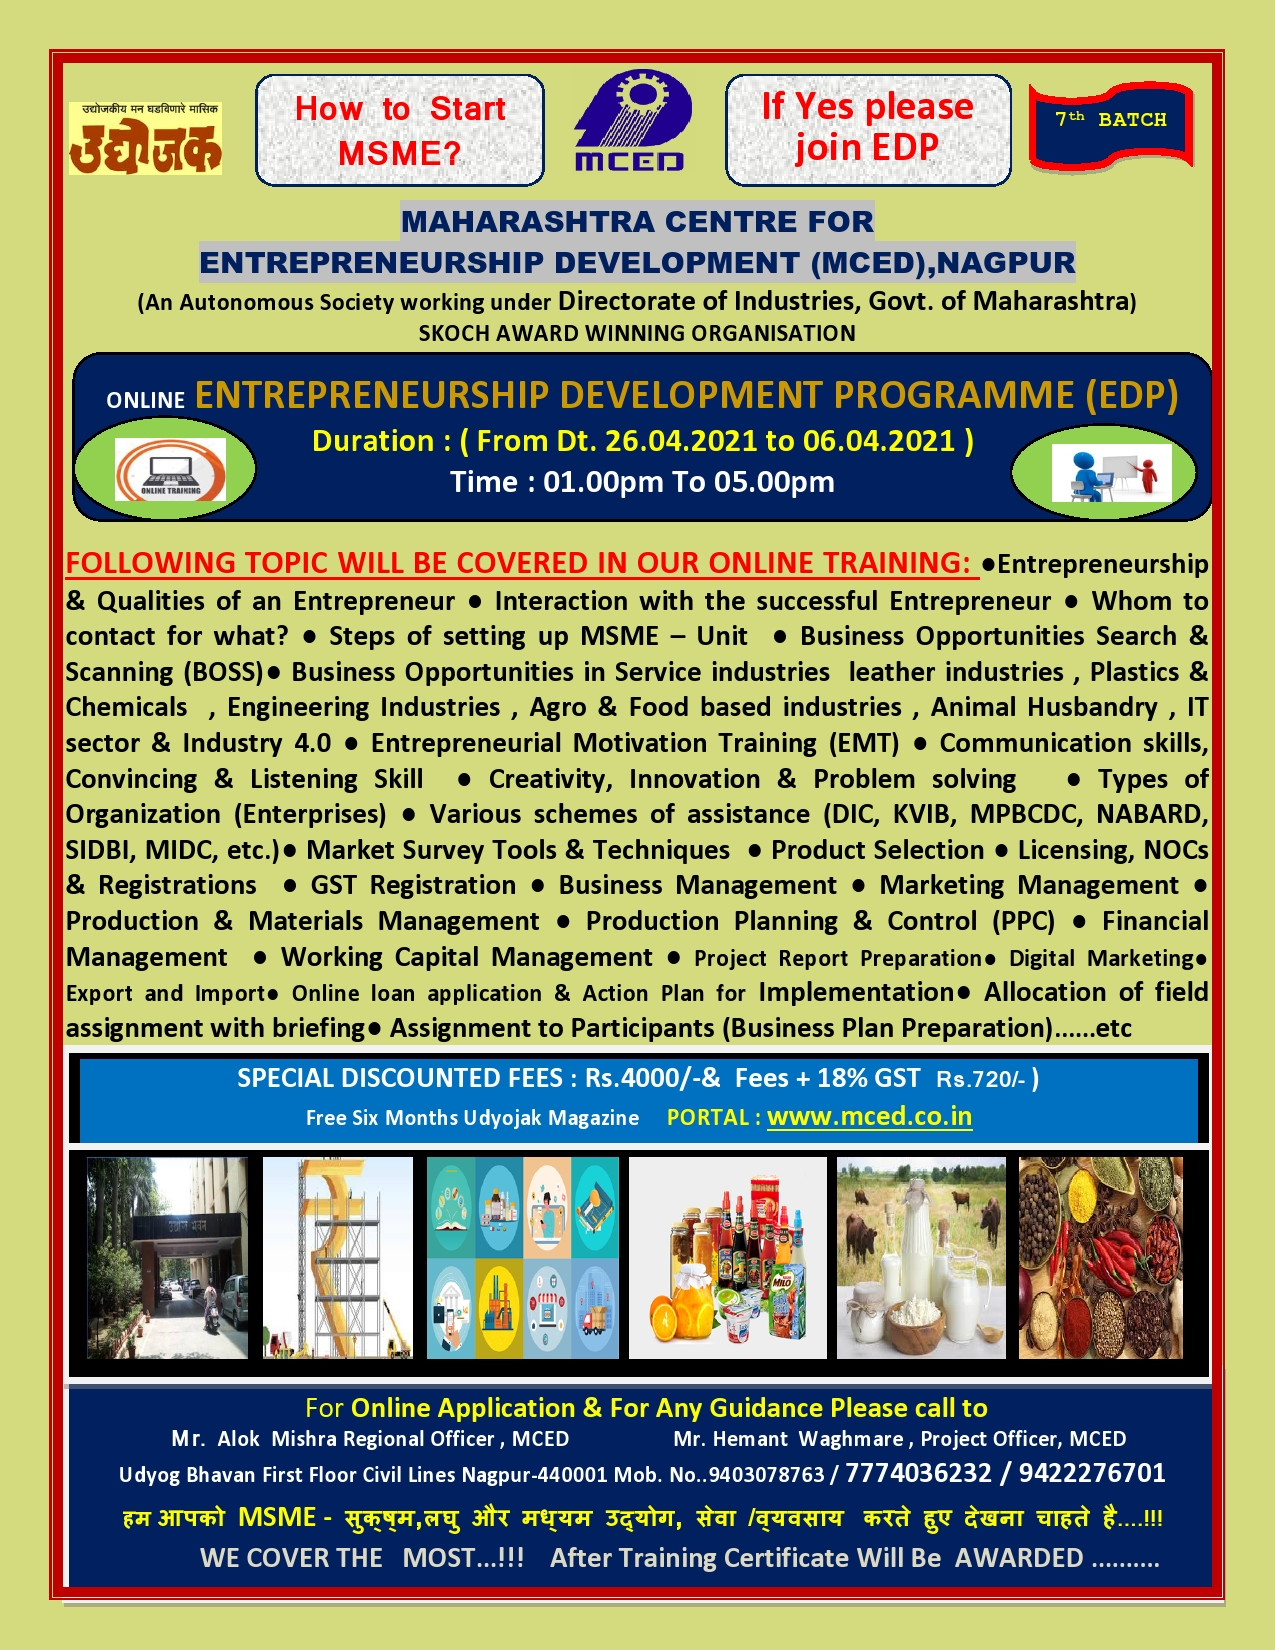 ONLINE ENTREPRENEURSHIP DEVELOPMENT PROGRAMME (EDP)